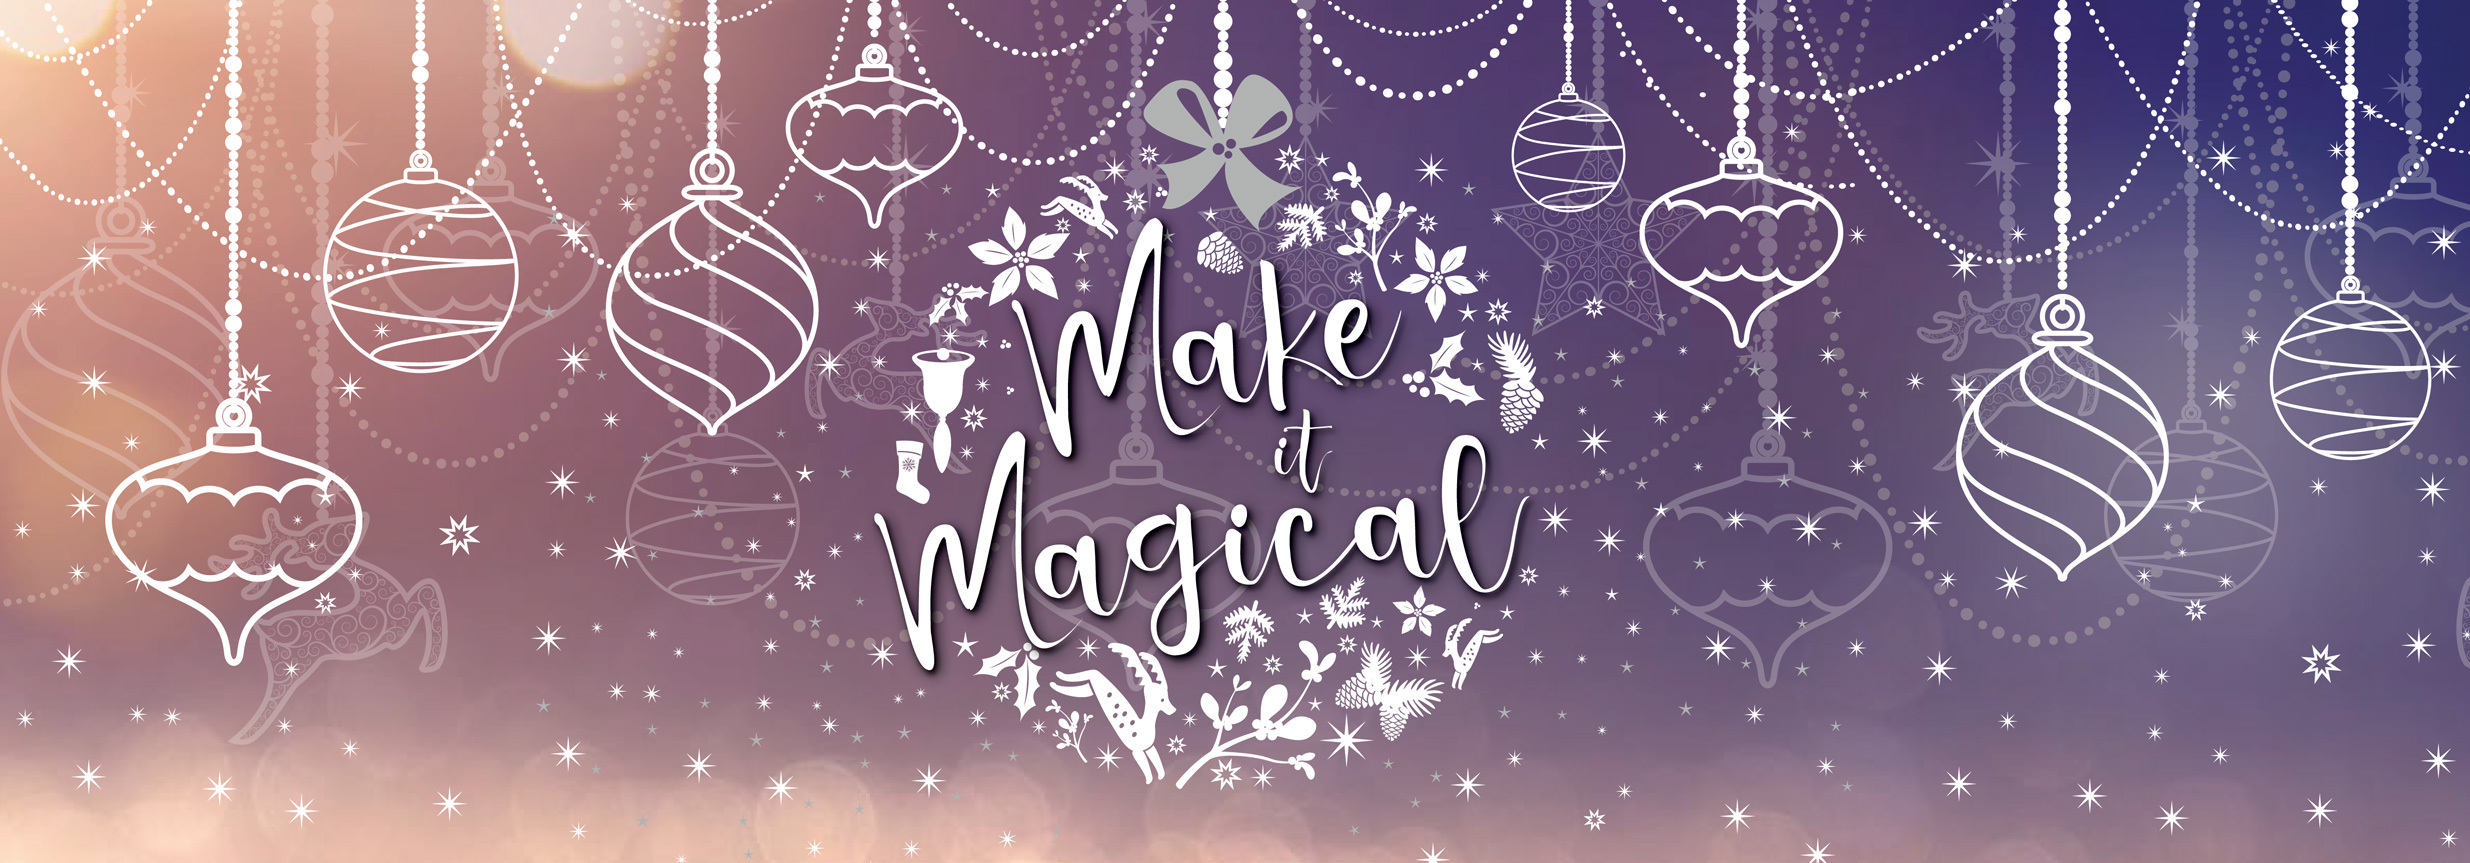 20180911 Make It Magical Banner